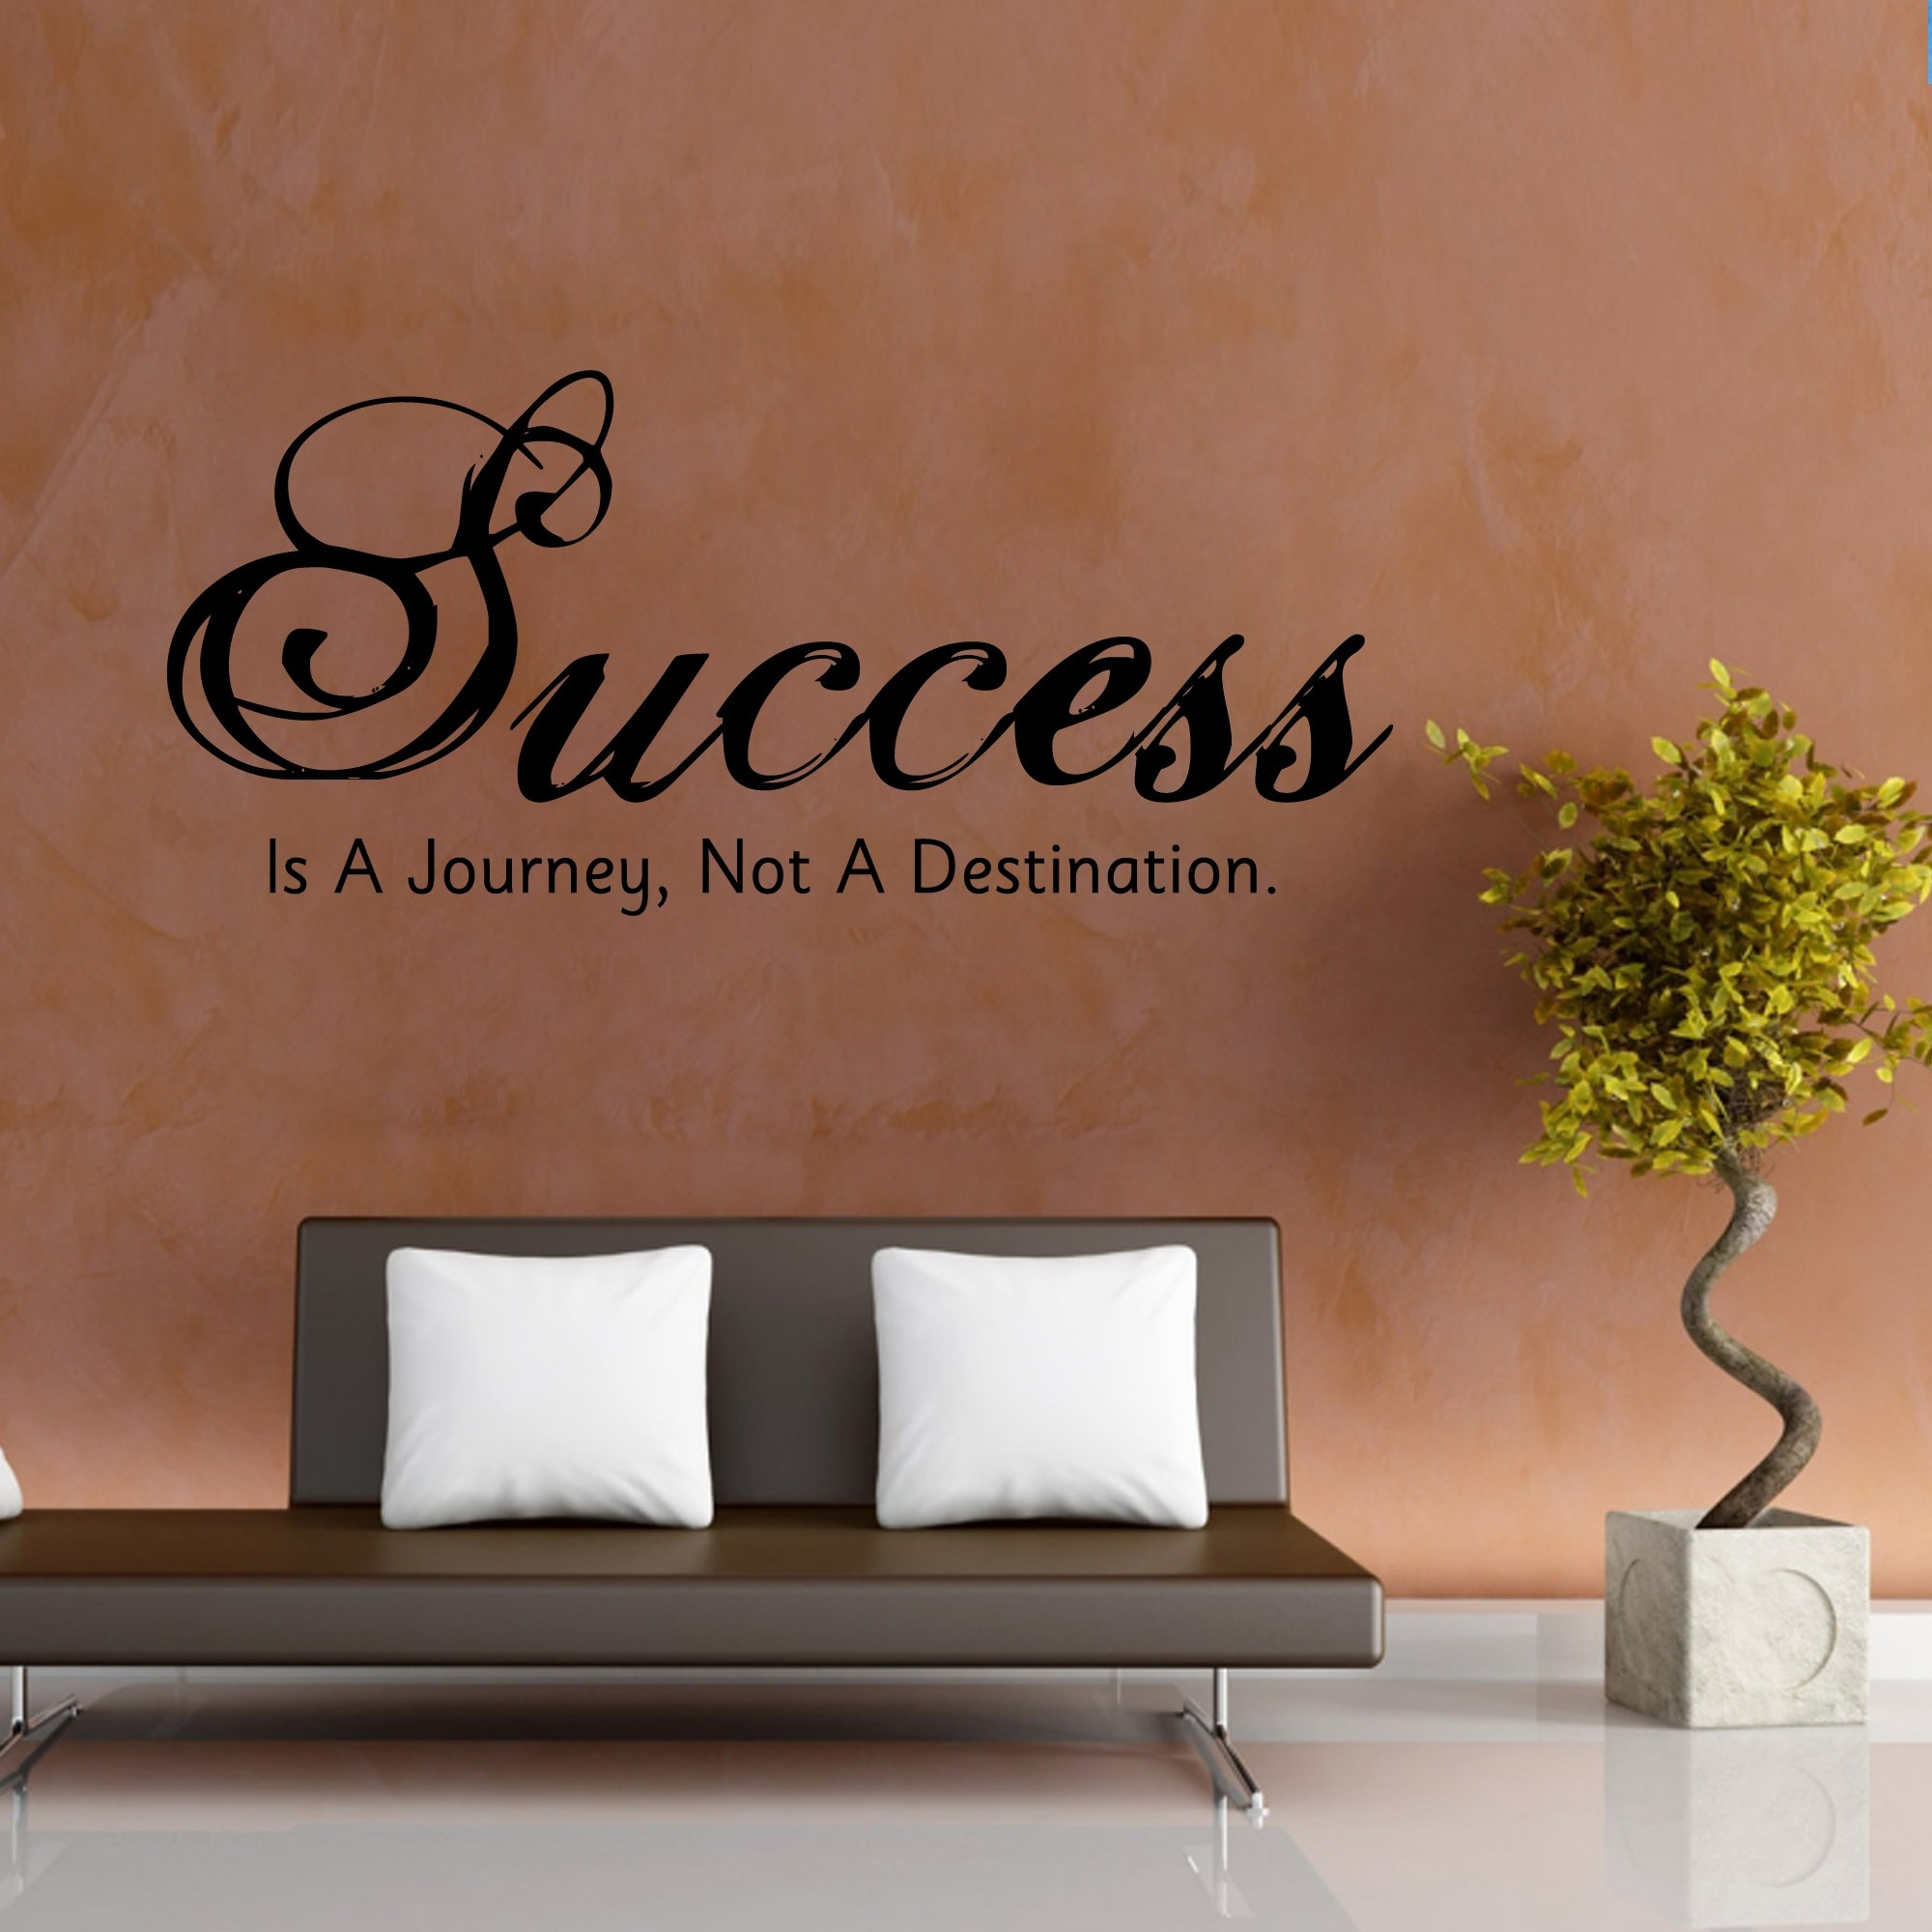 Success A Destination Wall Sticker Decal-Small-Black